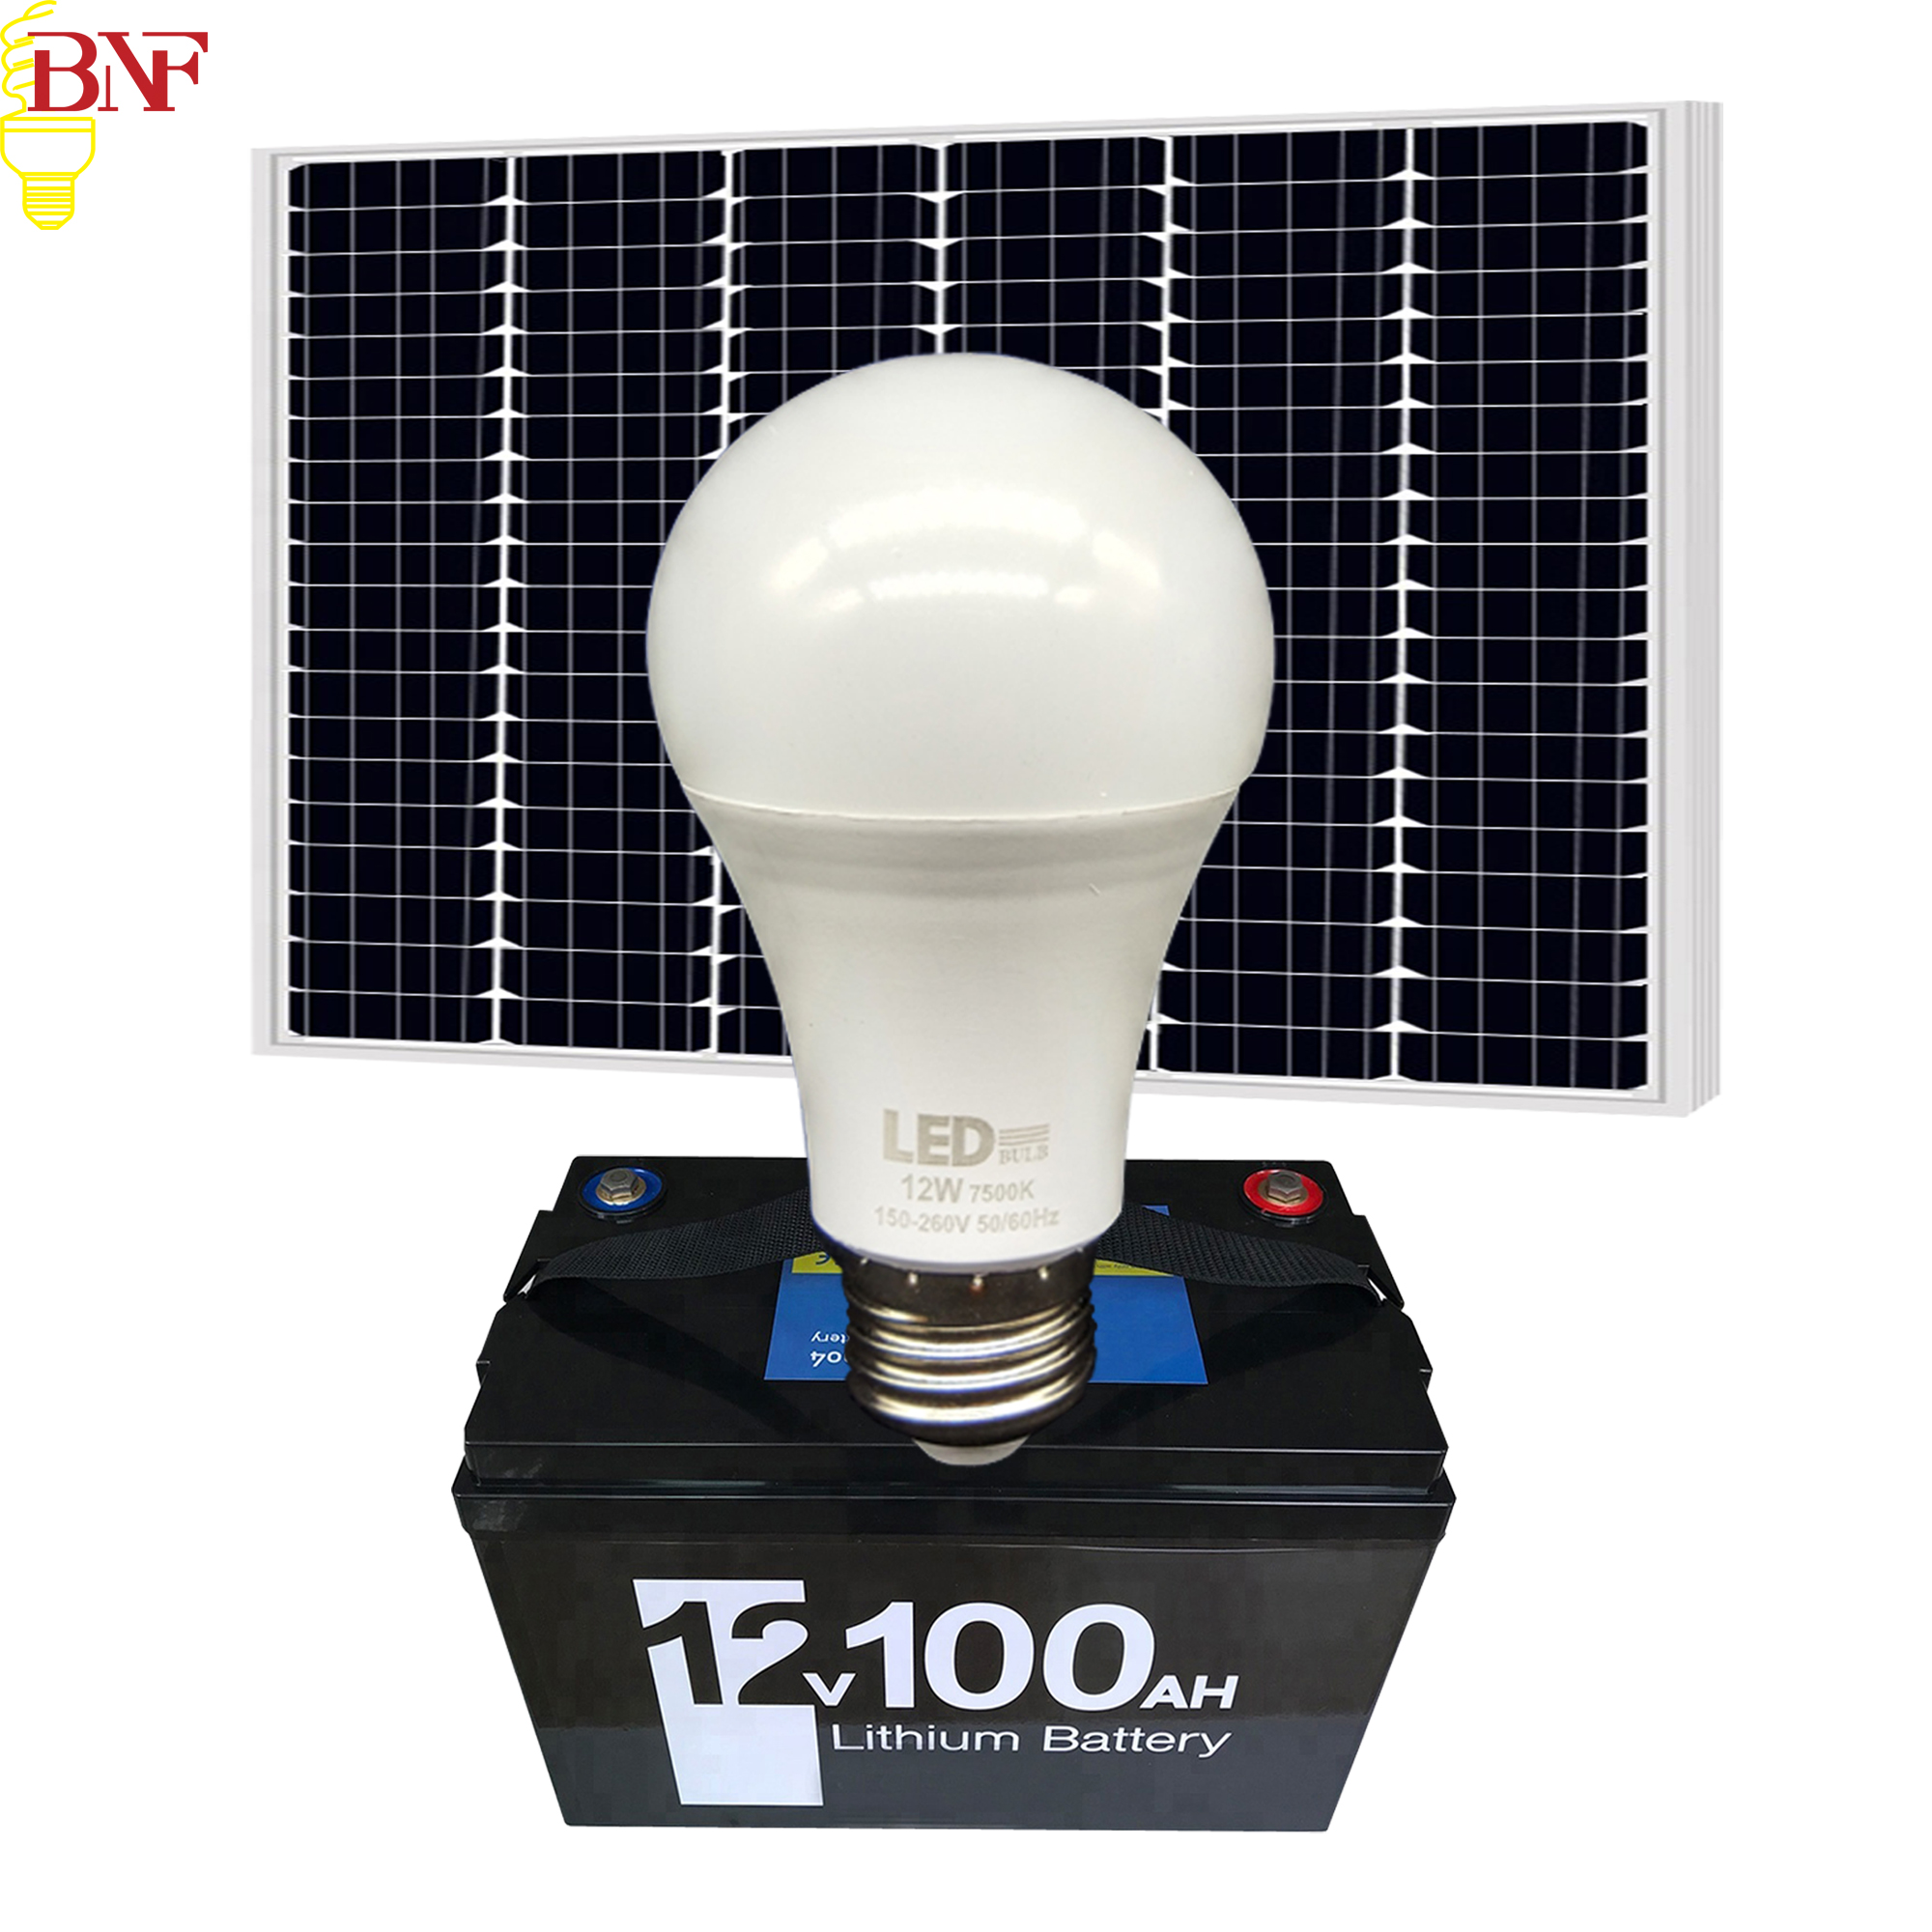 <strong>12v</strong> 24V 36V 48V dc led light <strong>bulb</strong> for solar panel battery and ship boat use 12volt